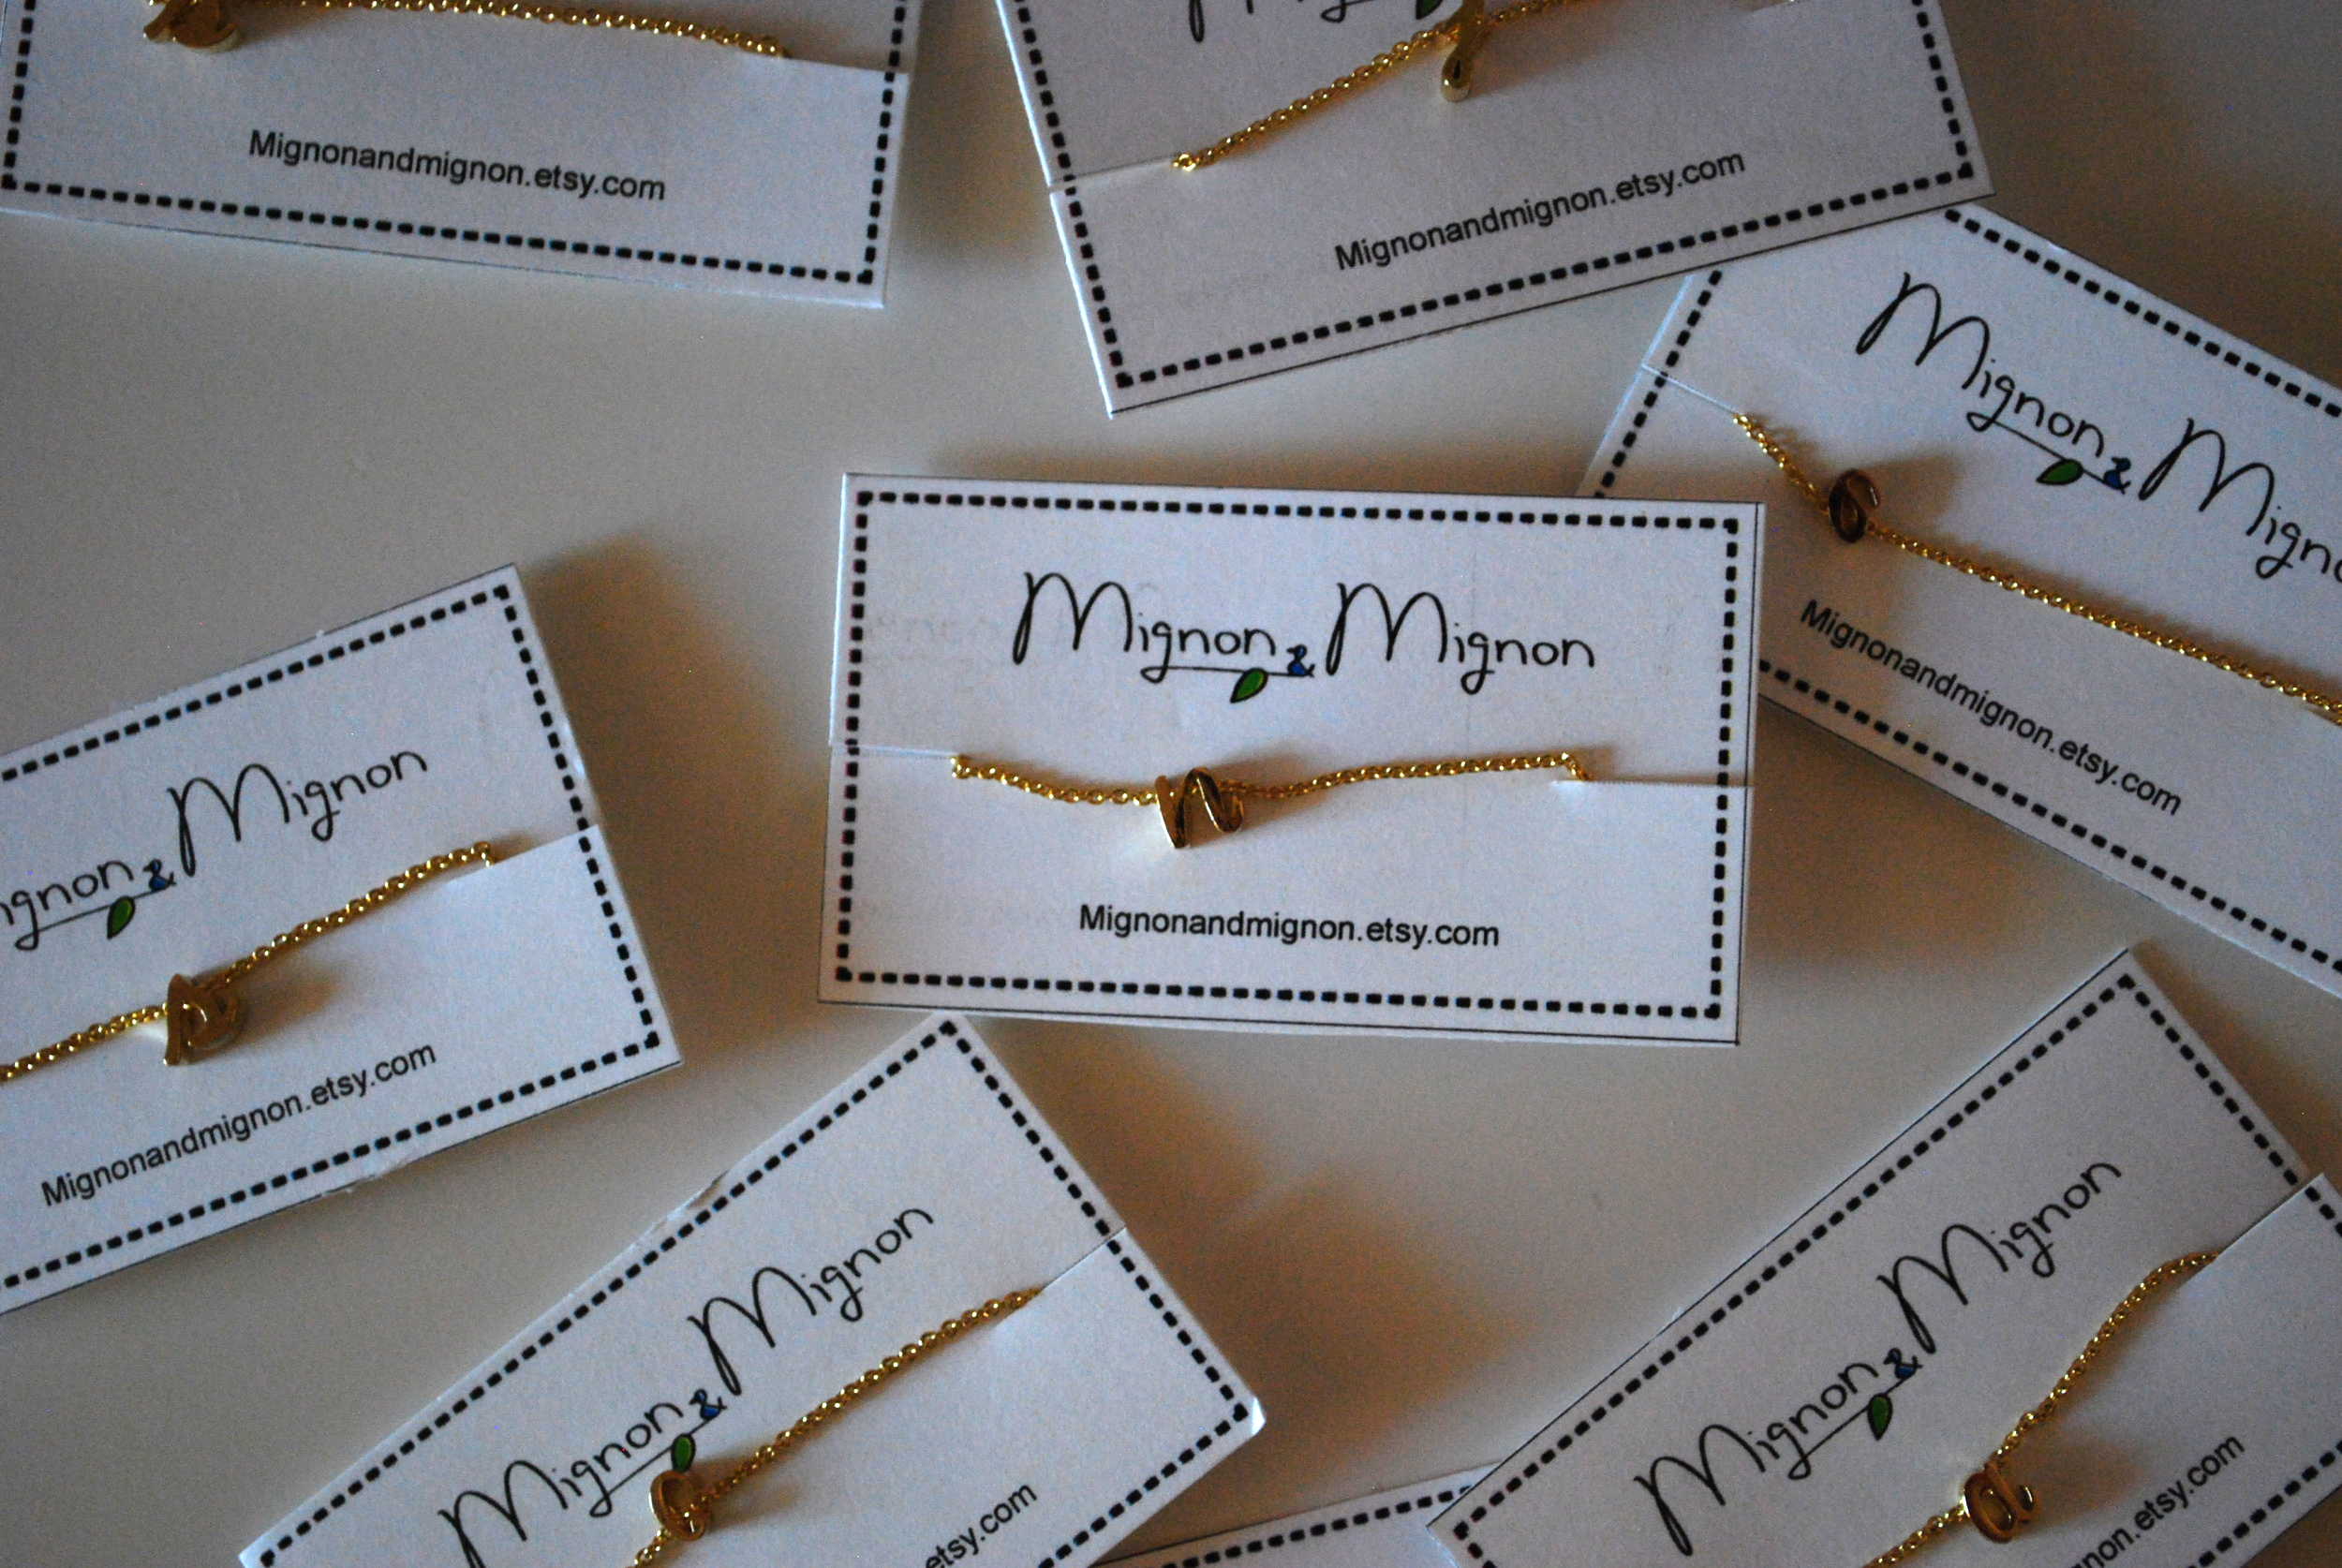 Initial necklaces from Mignon and Mignon's Etsy shop